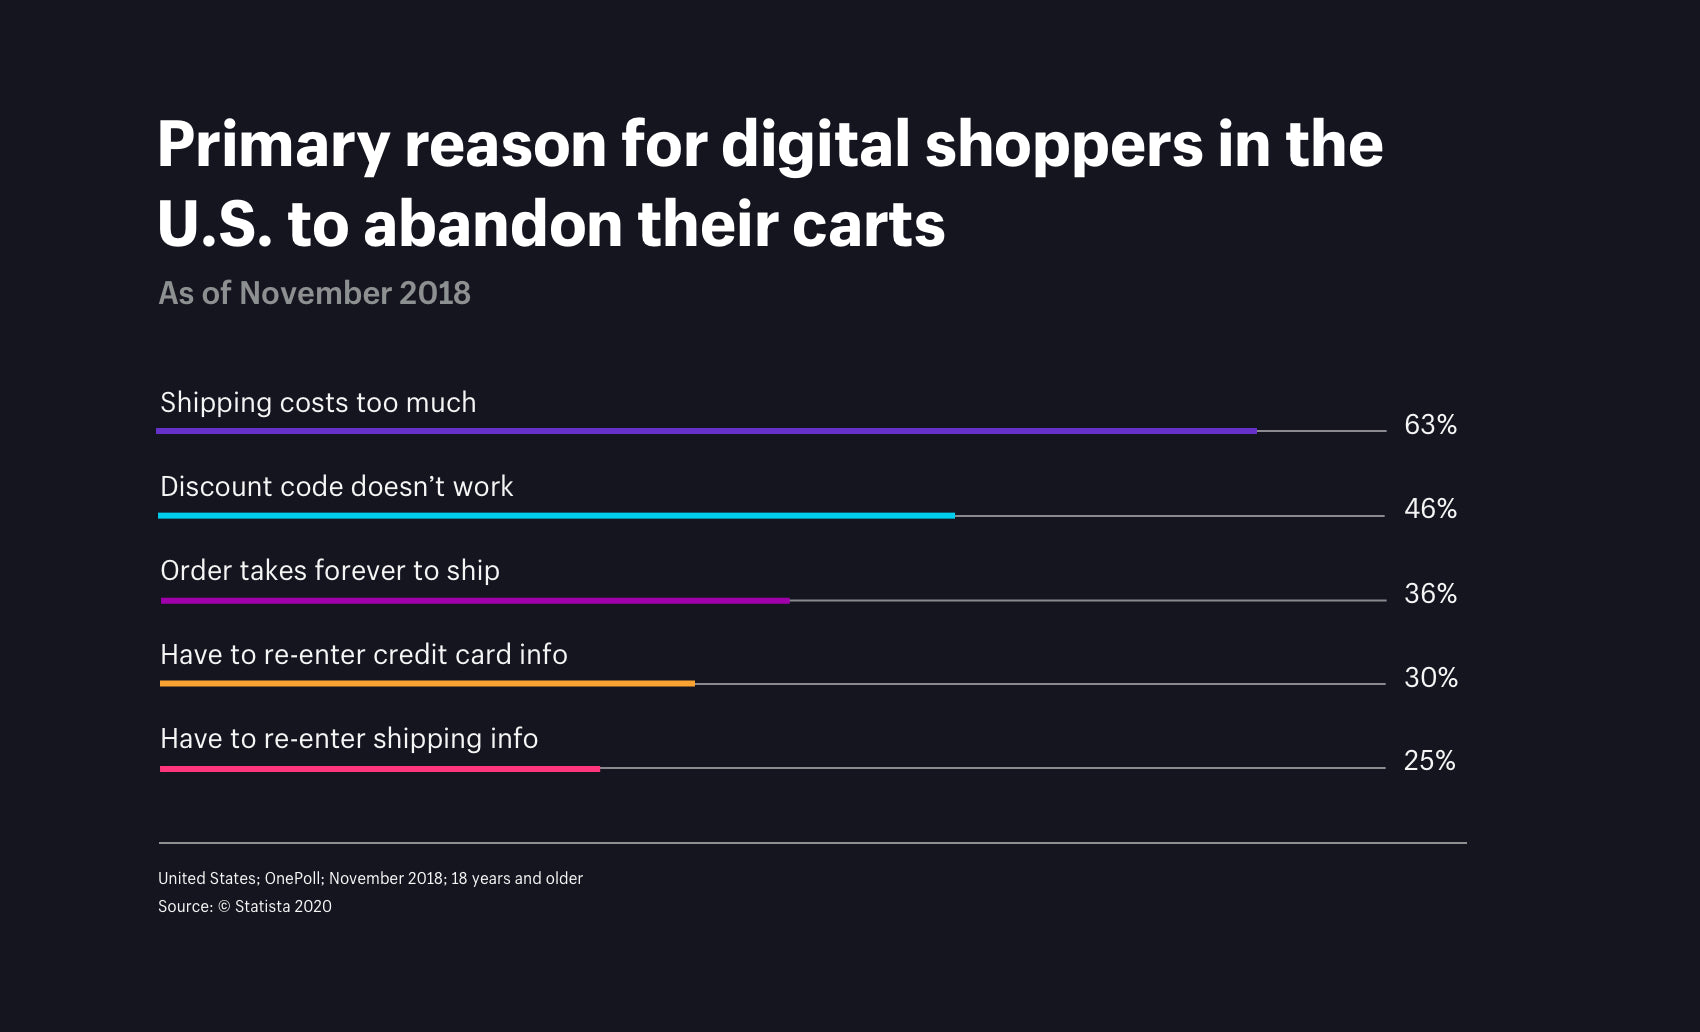 Primary reason for US shoppers to abandon their carts